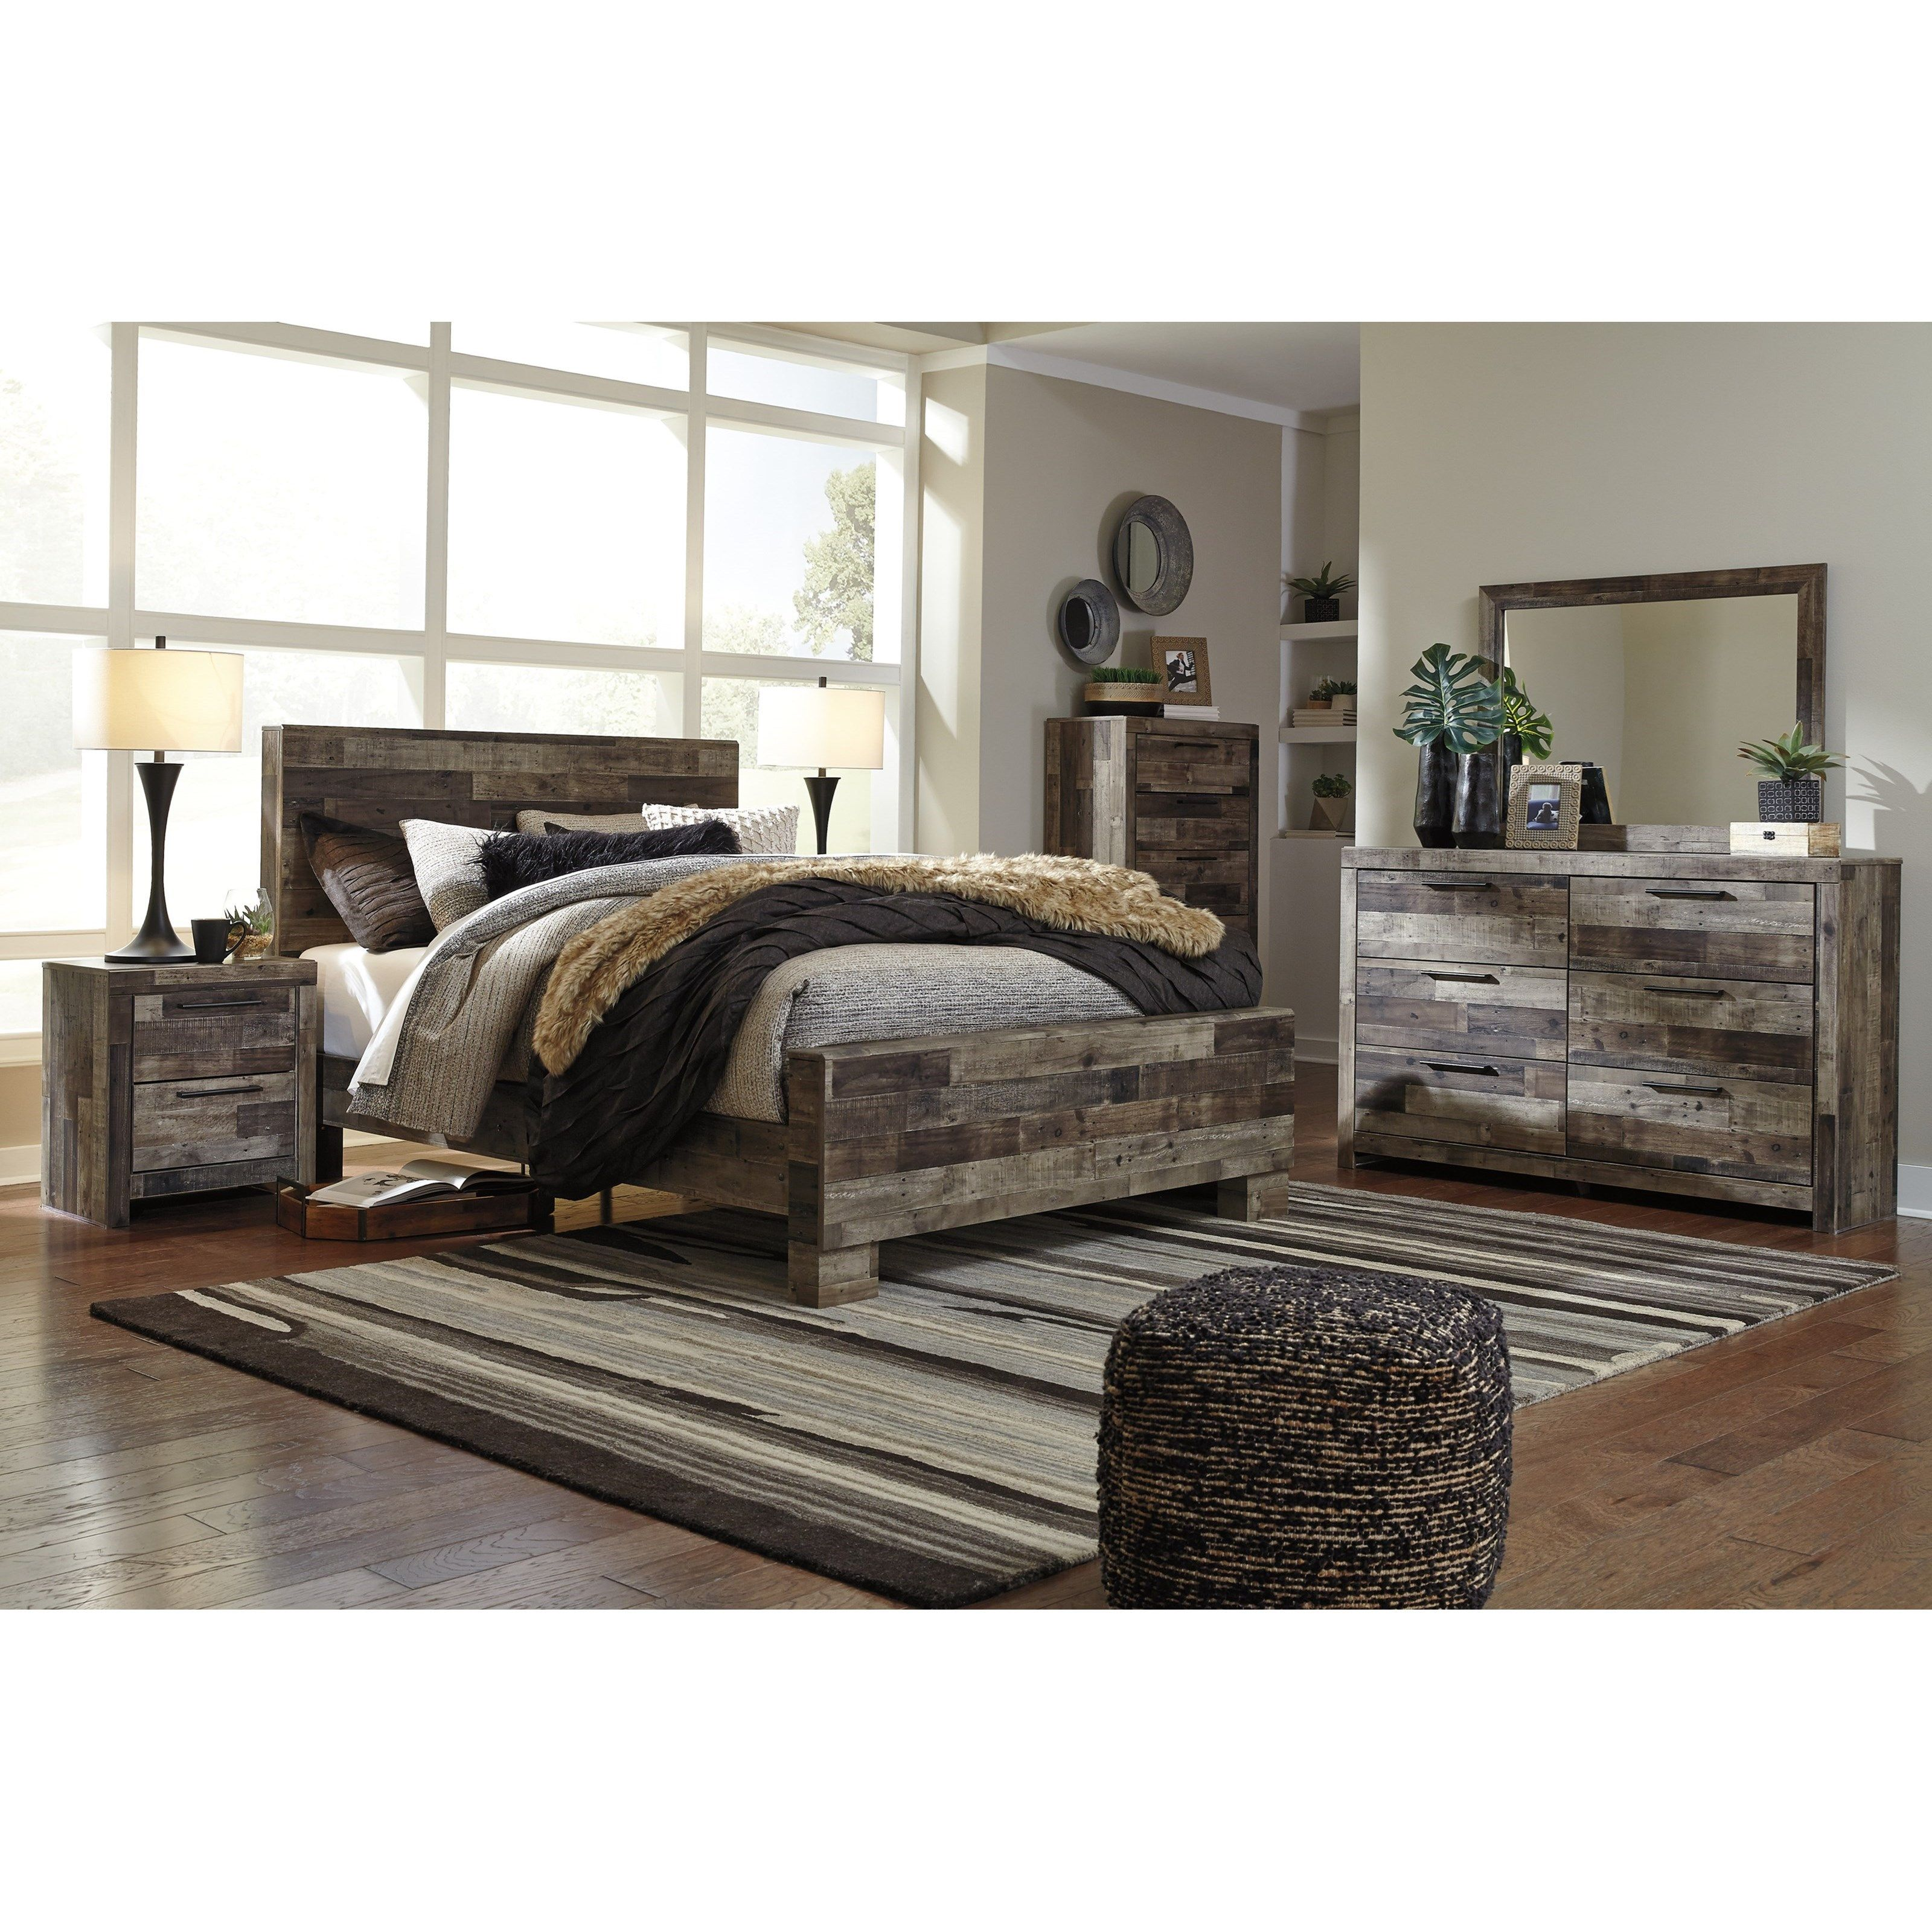 Derekson Queen Bedroom Group by Benchcraft at Miskelly